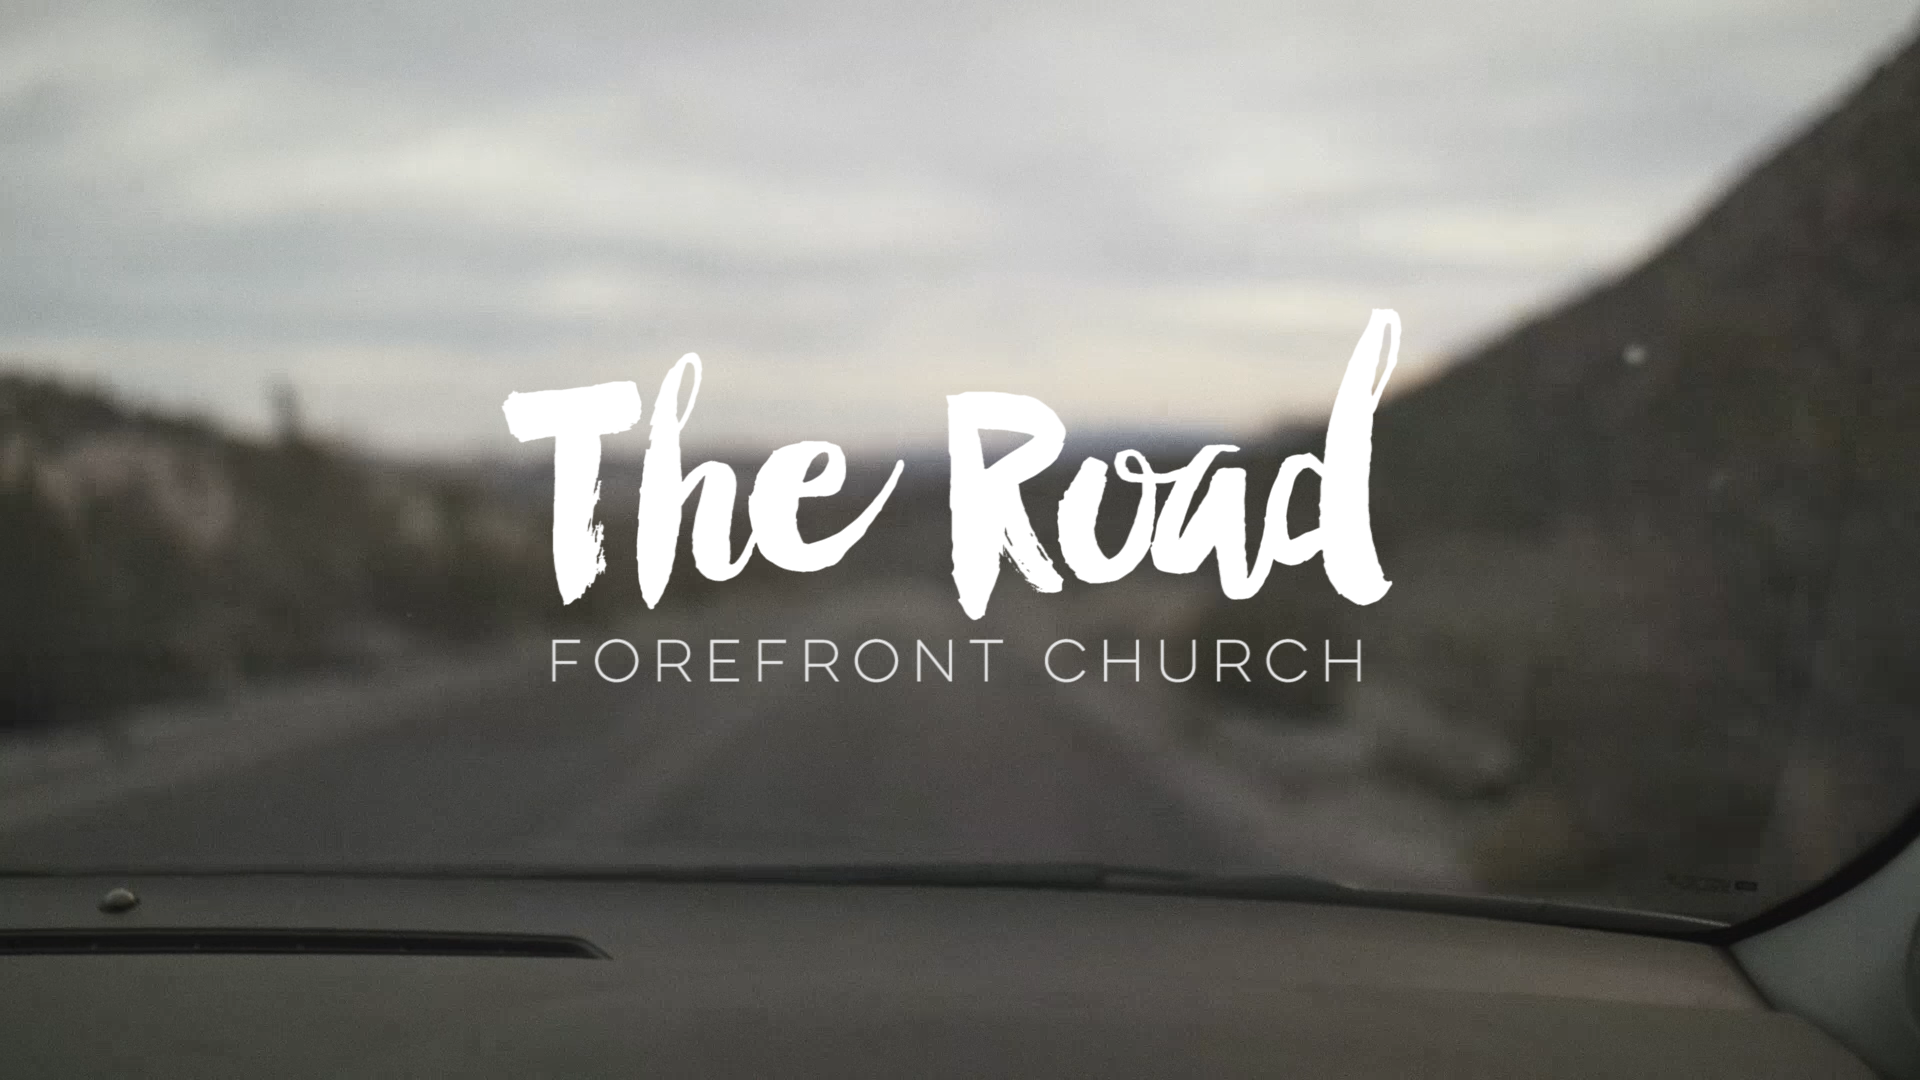 The Road, Faith And Belief?